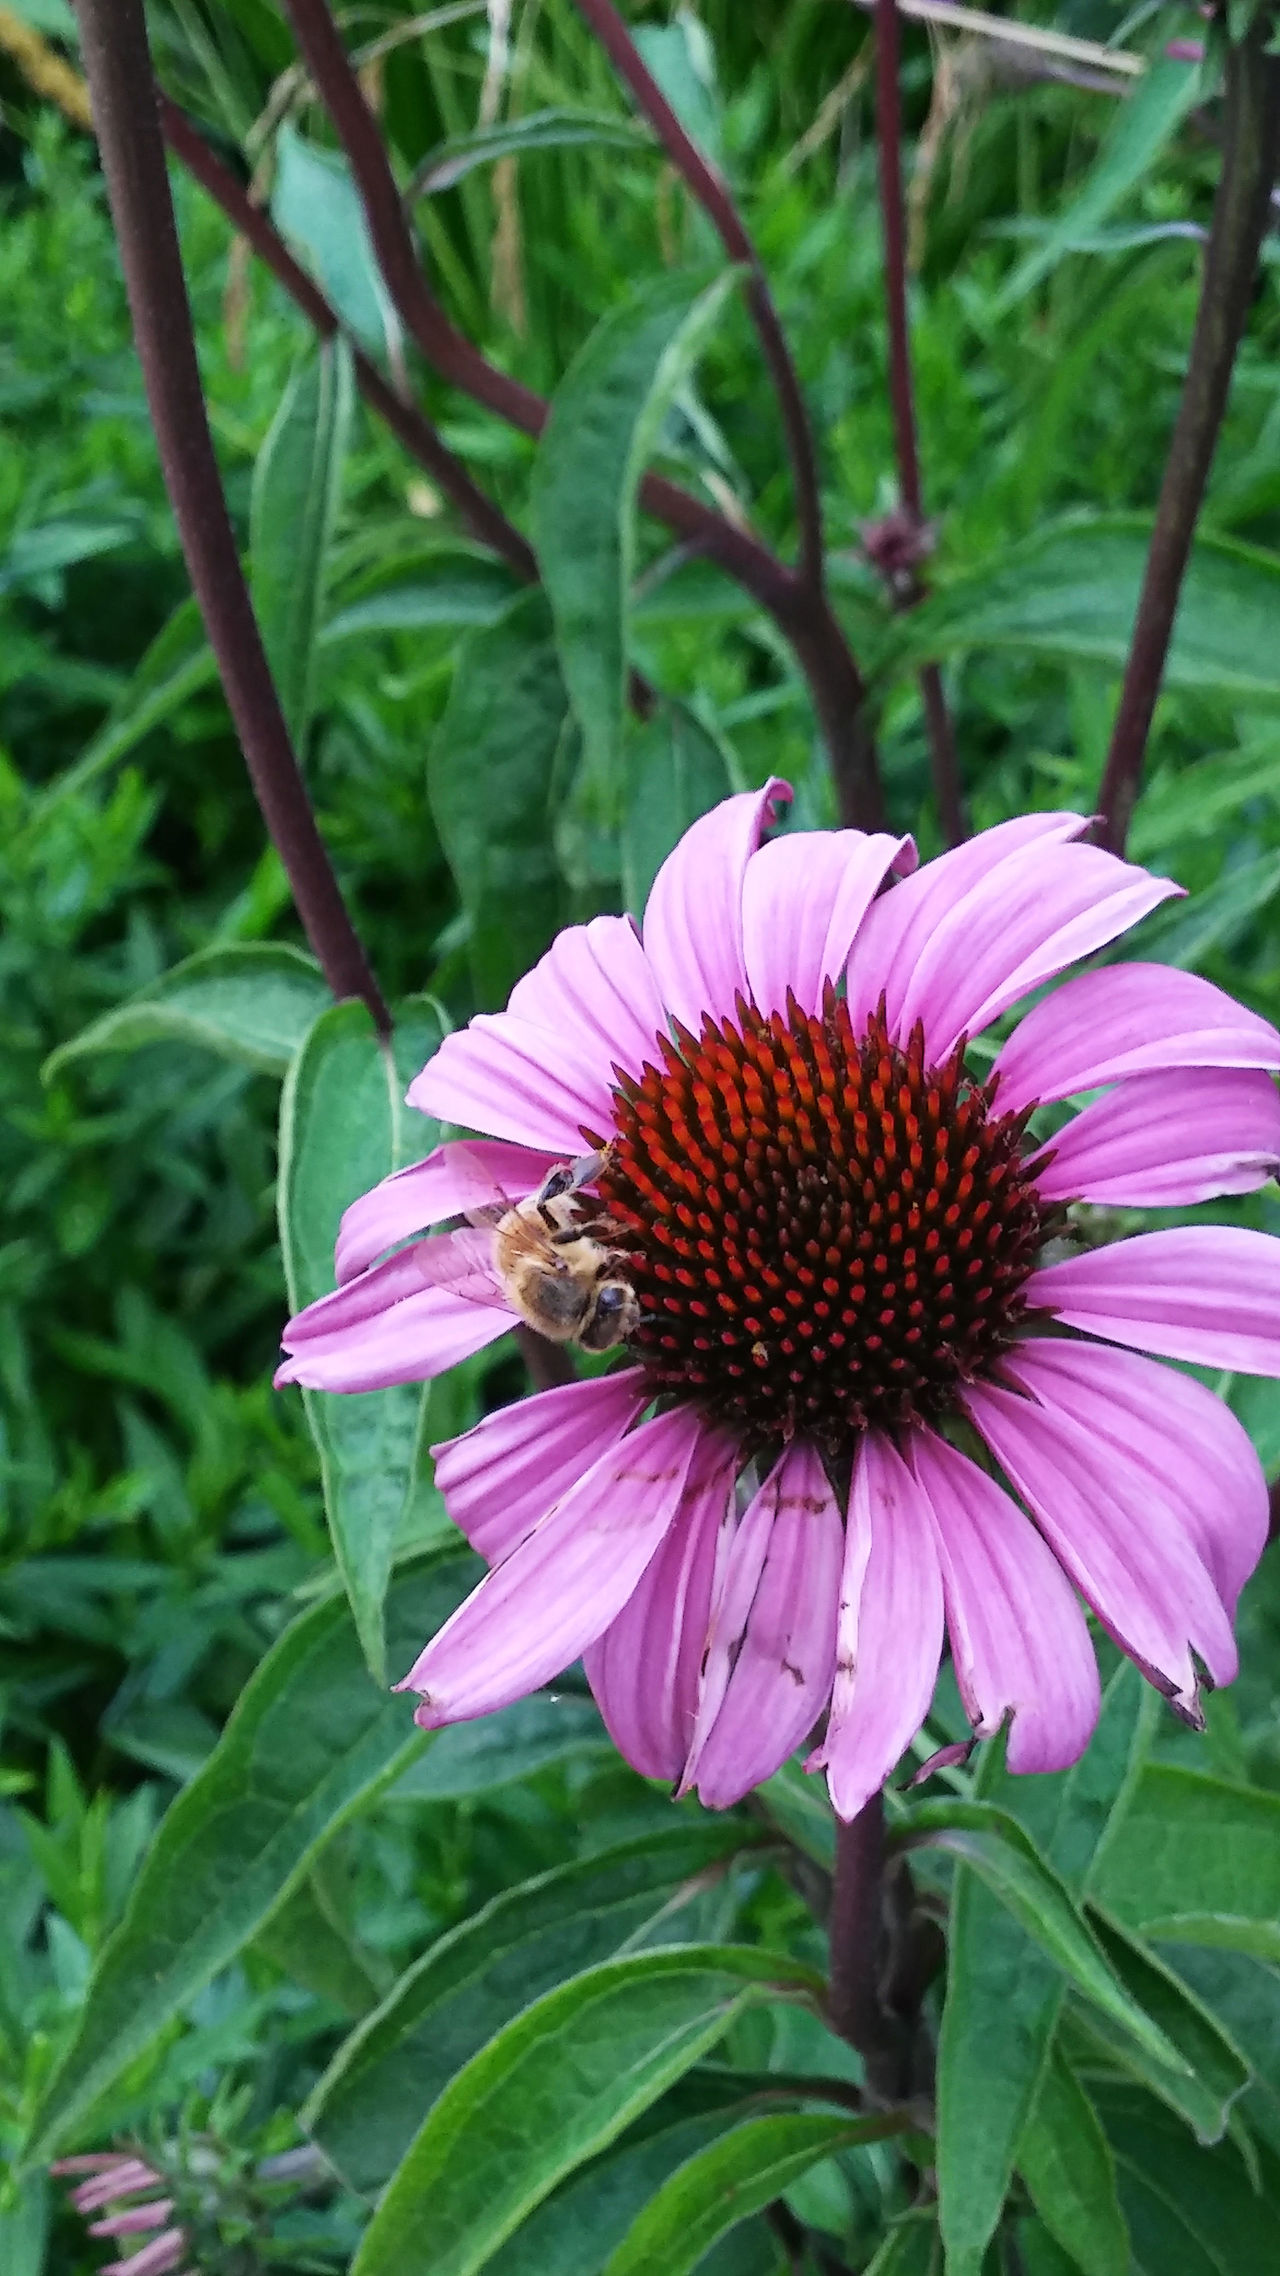 Hunger Animal Themes Beauty In Nature Bee Bloom Blooming Bug Bumblebee Close-up Day Eastern Purple Coneflower Flower Flower Head Fragility Freshness Growth Insect Nature No People Outdoors Petal Plant Pollen Pollination Purple